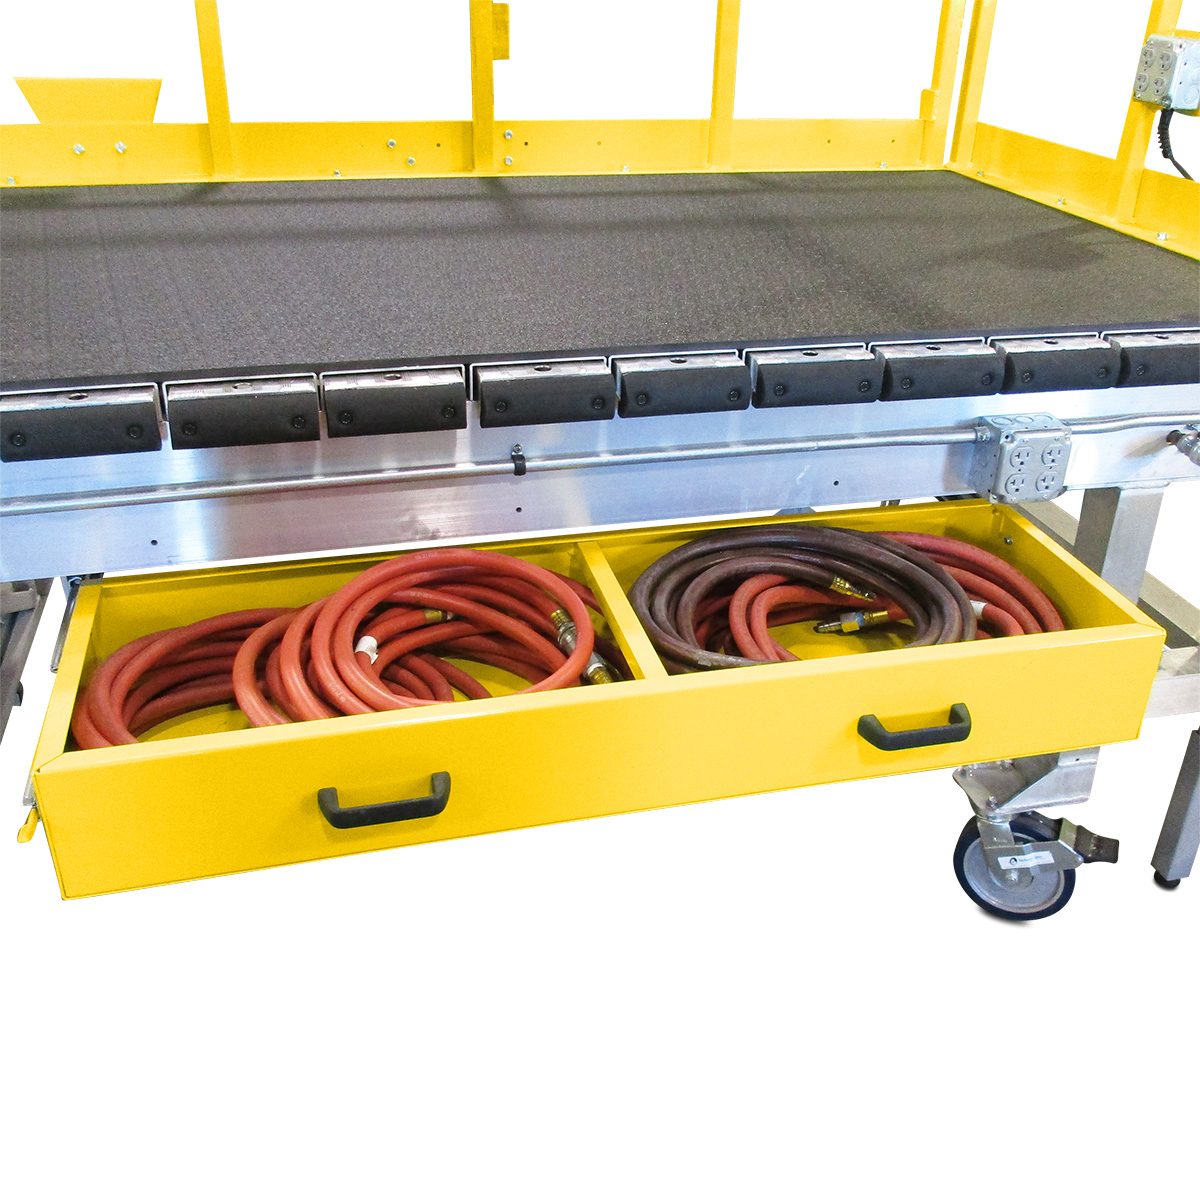 CH-47 Chinook Helicopter – Daily Maintenance Ergonomic storage for OSHA compliant, portable, aluminum work stands with integrated cabinets and integrated drawers.